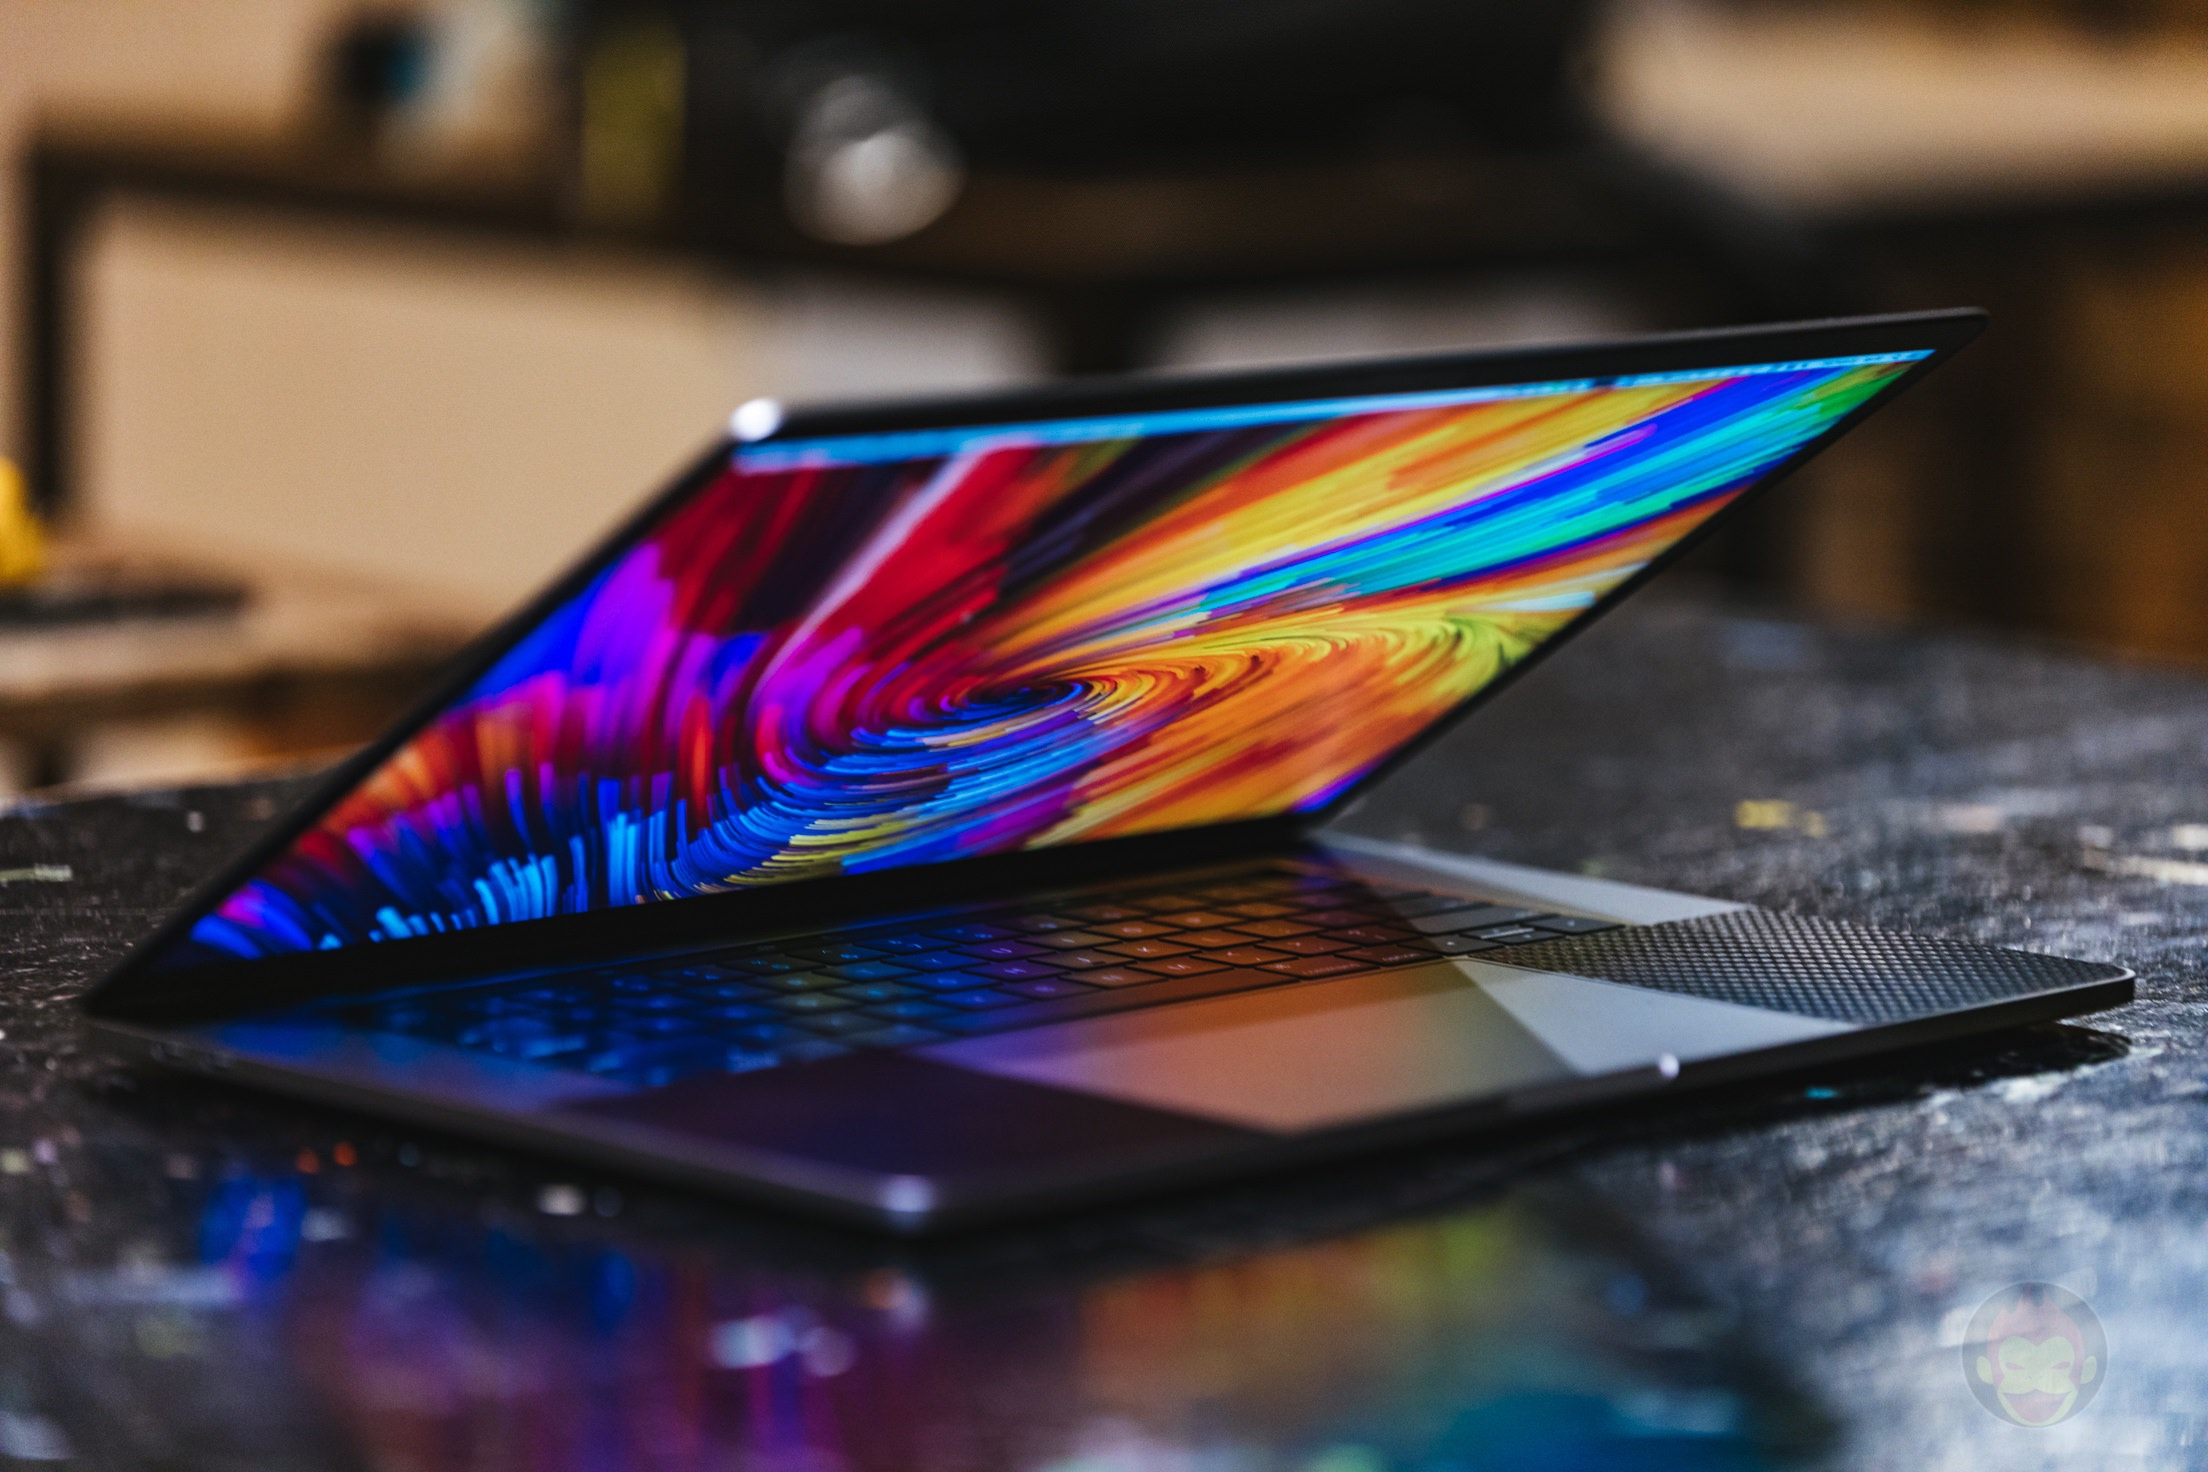 MacBook-Pro-2019-15inch-review-25.jpg